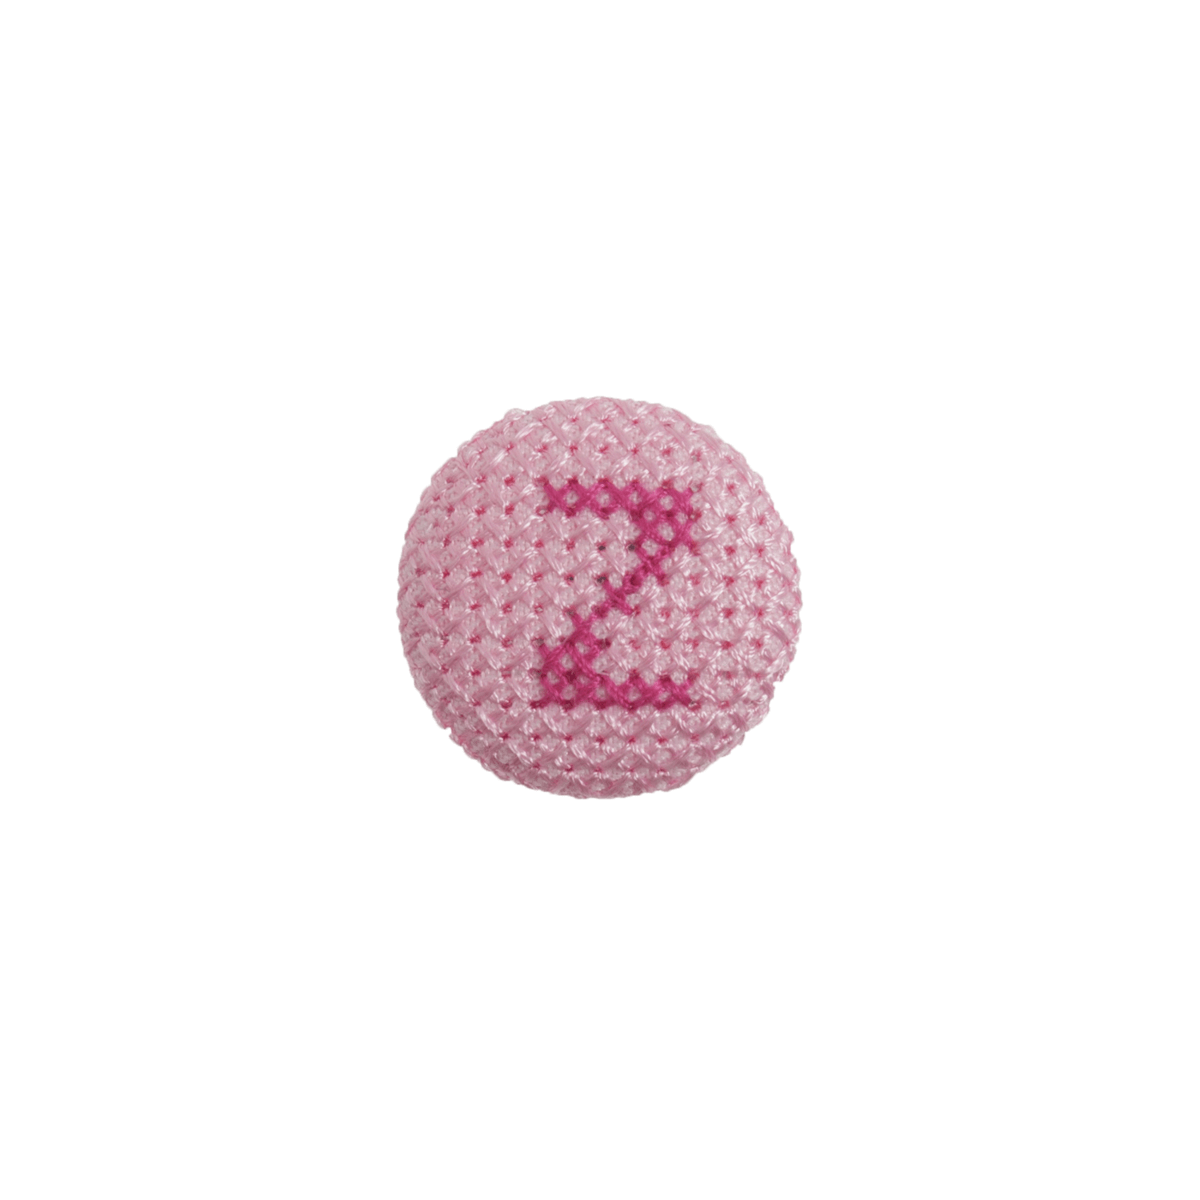 1 x Alphabet Cross Stitch Fuchsia On Pink 40 Lignes 25mm Craft Buttons